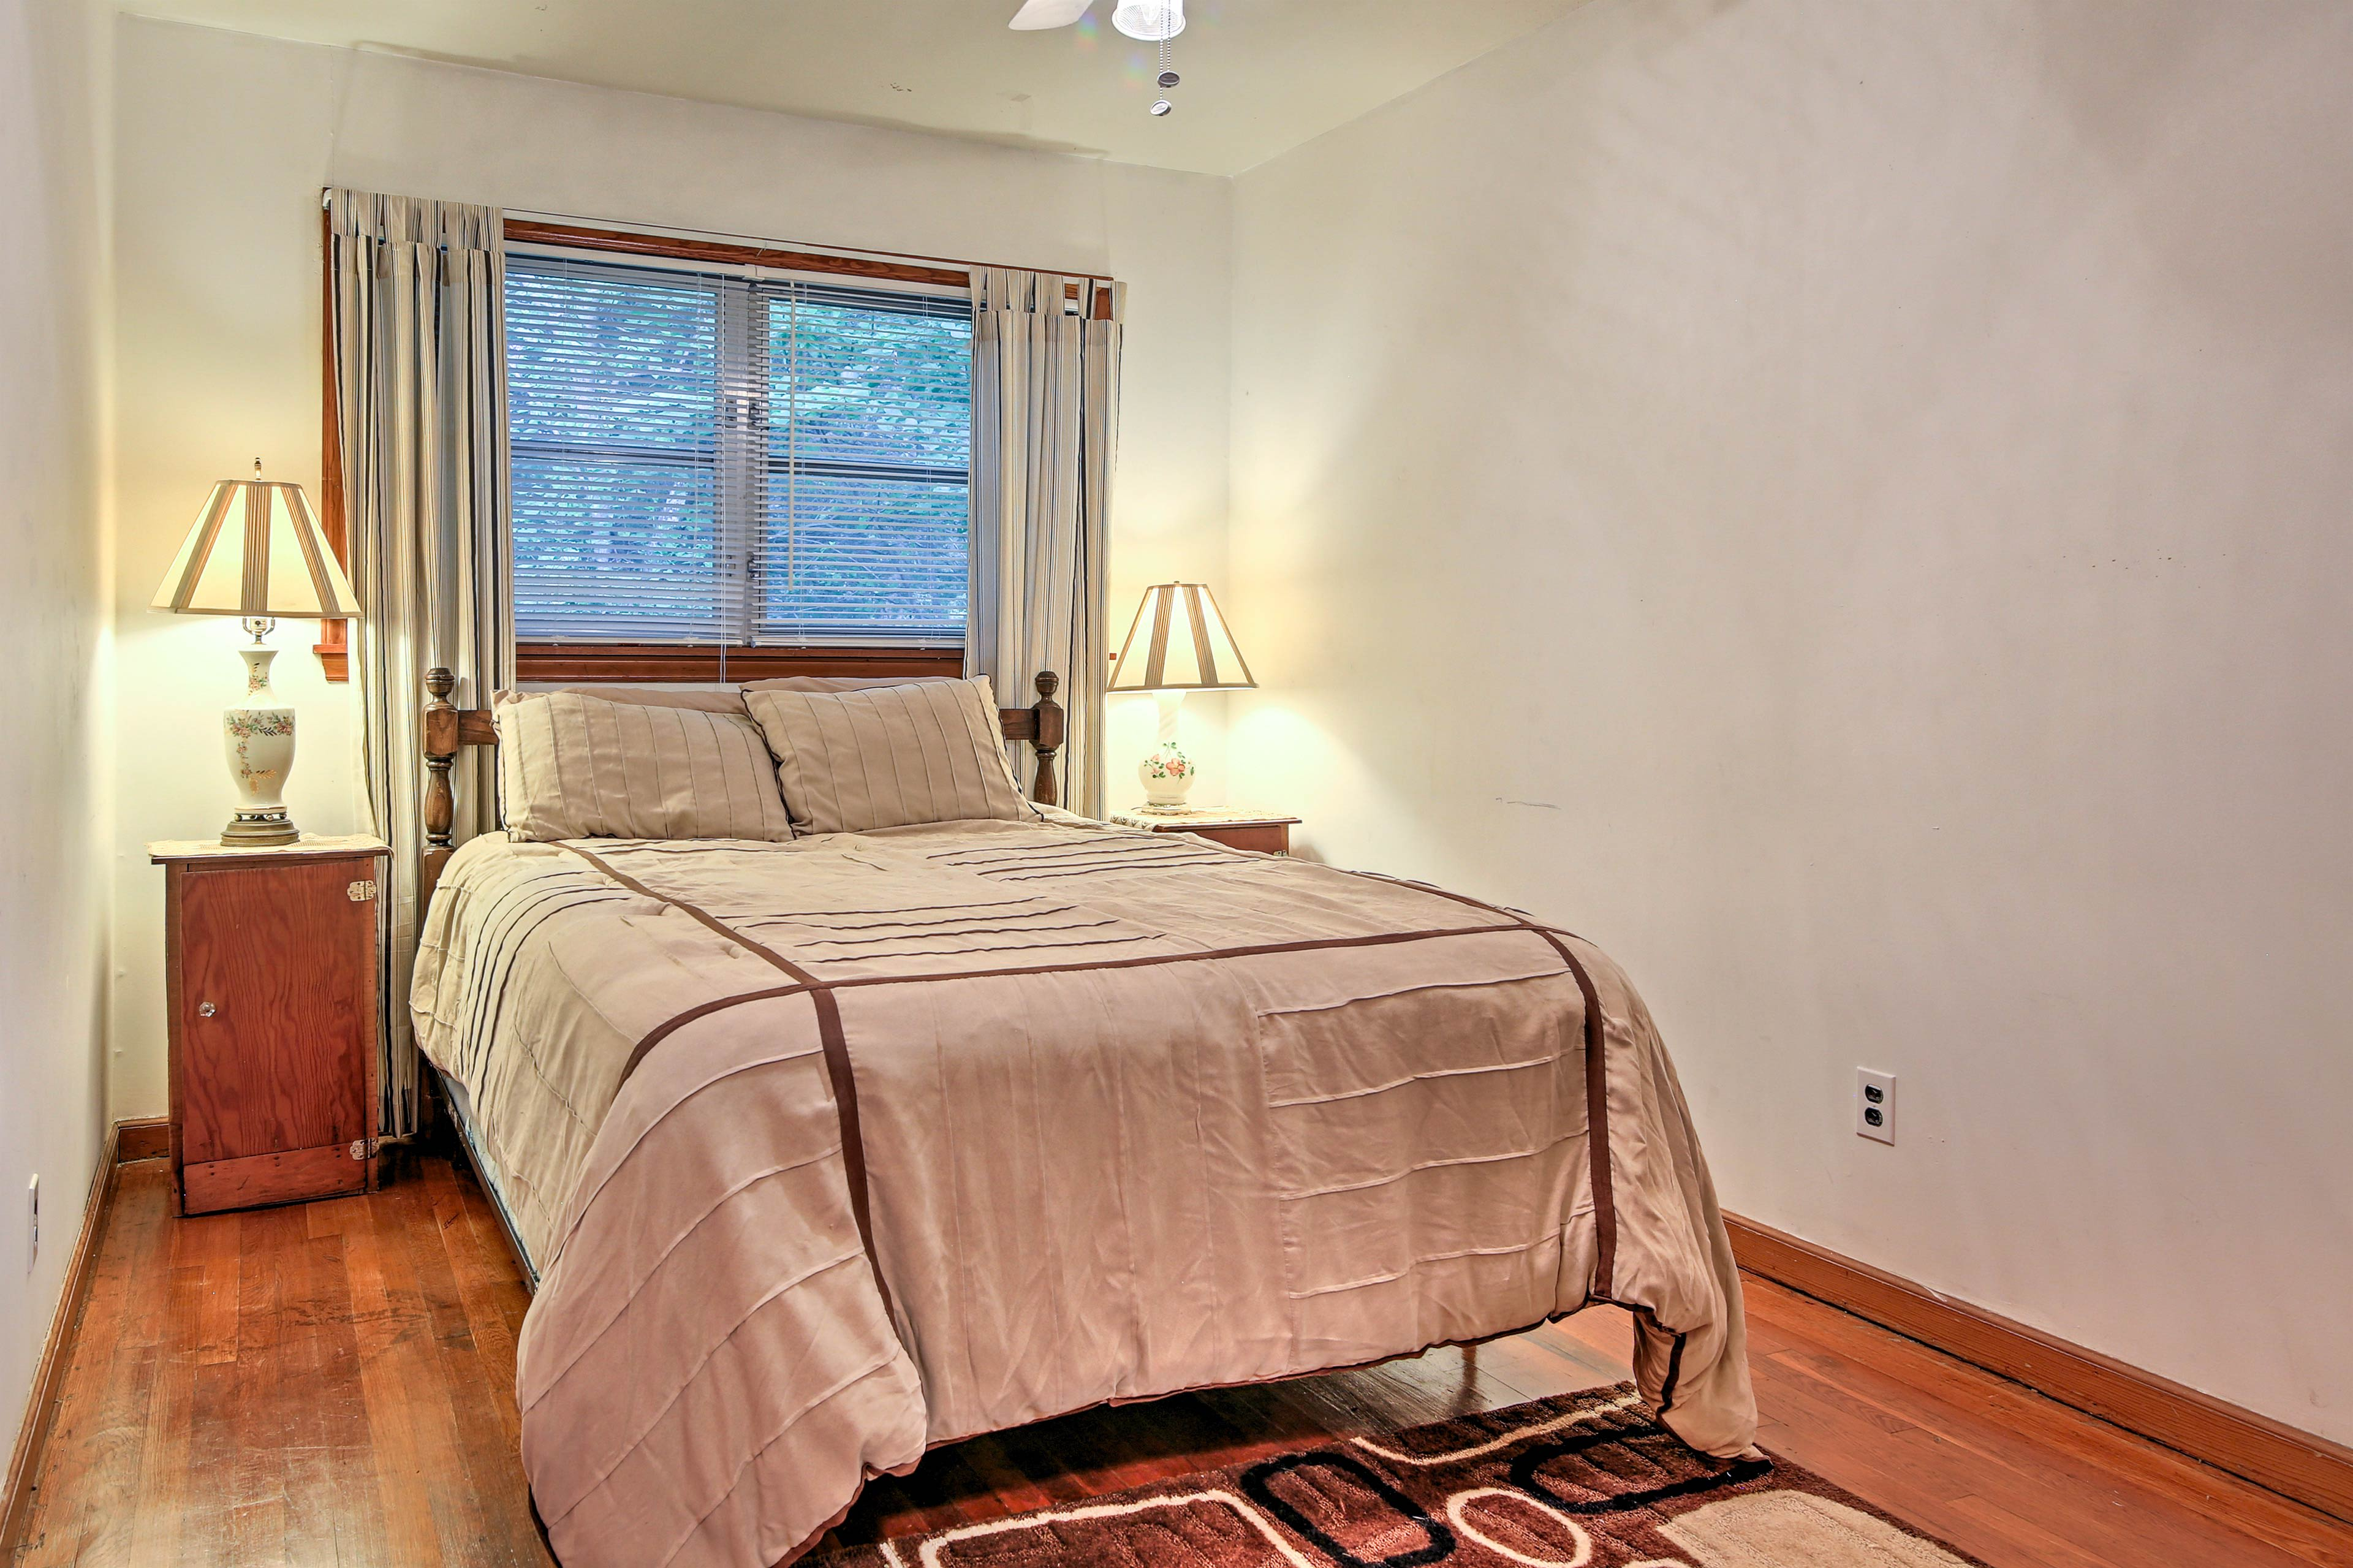 The third bedroom hosts a queen bed and bright natural light.